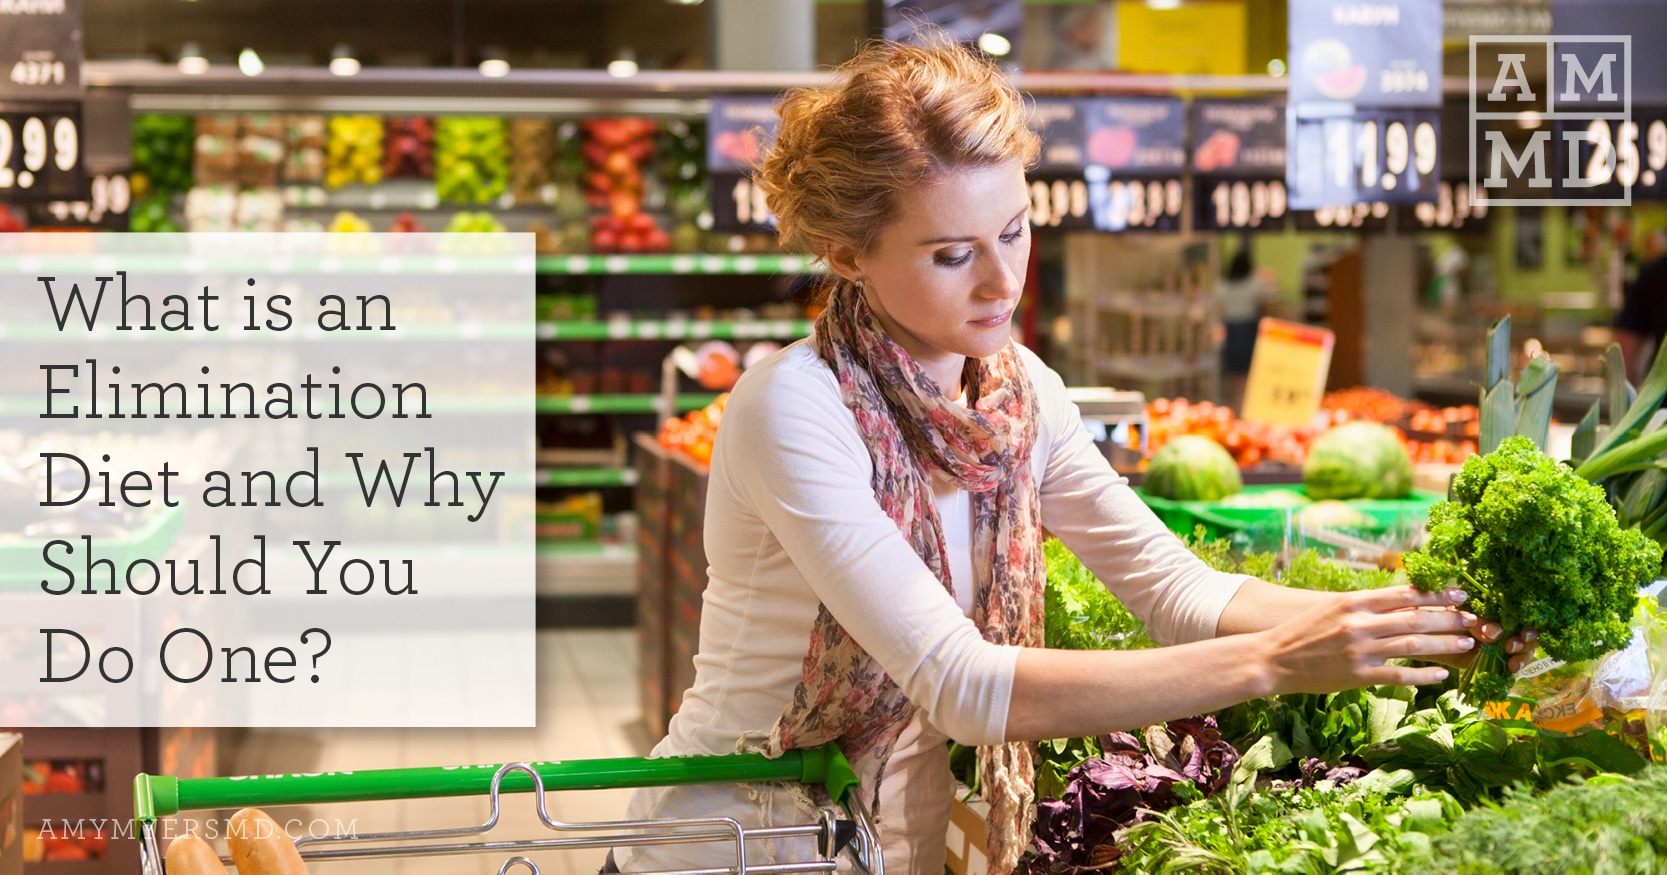 What is an Elimination Diet - Woman Shopping for Groceries - Featured Image - Amy Myers MD